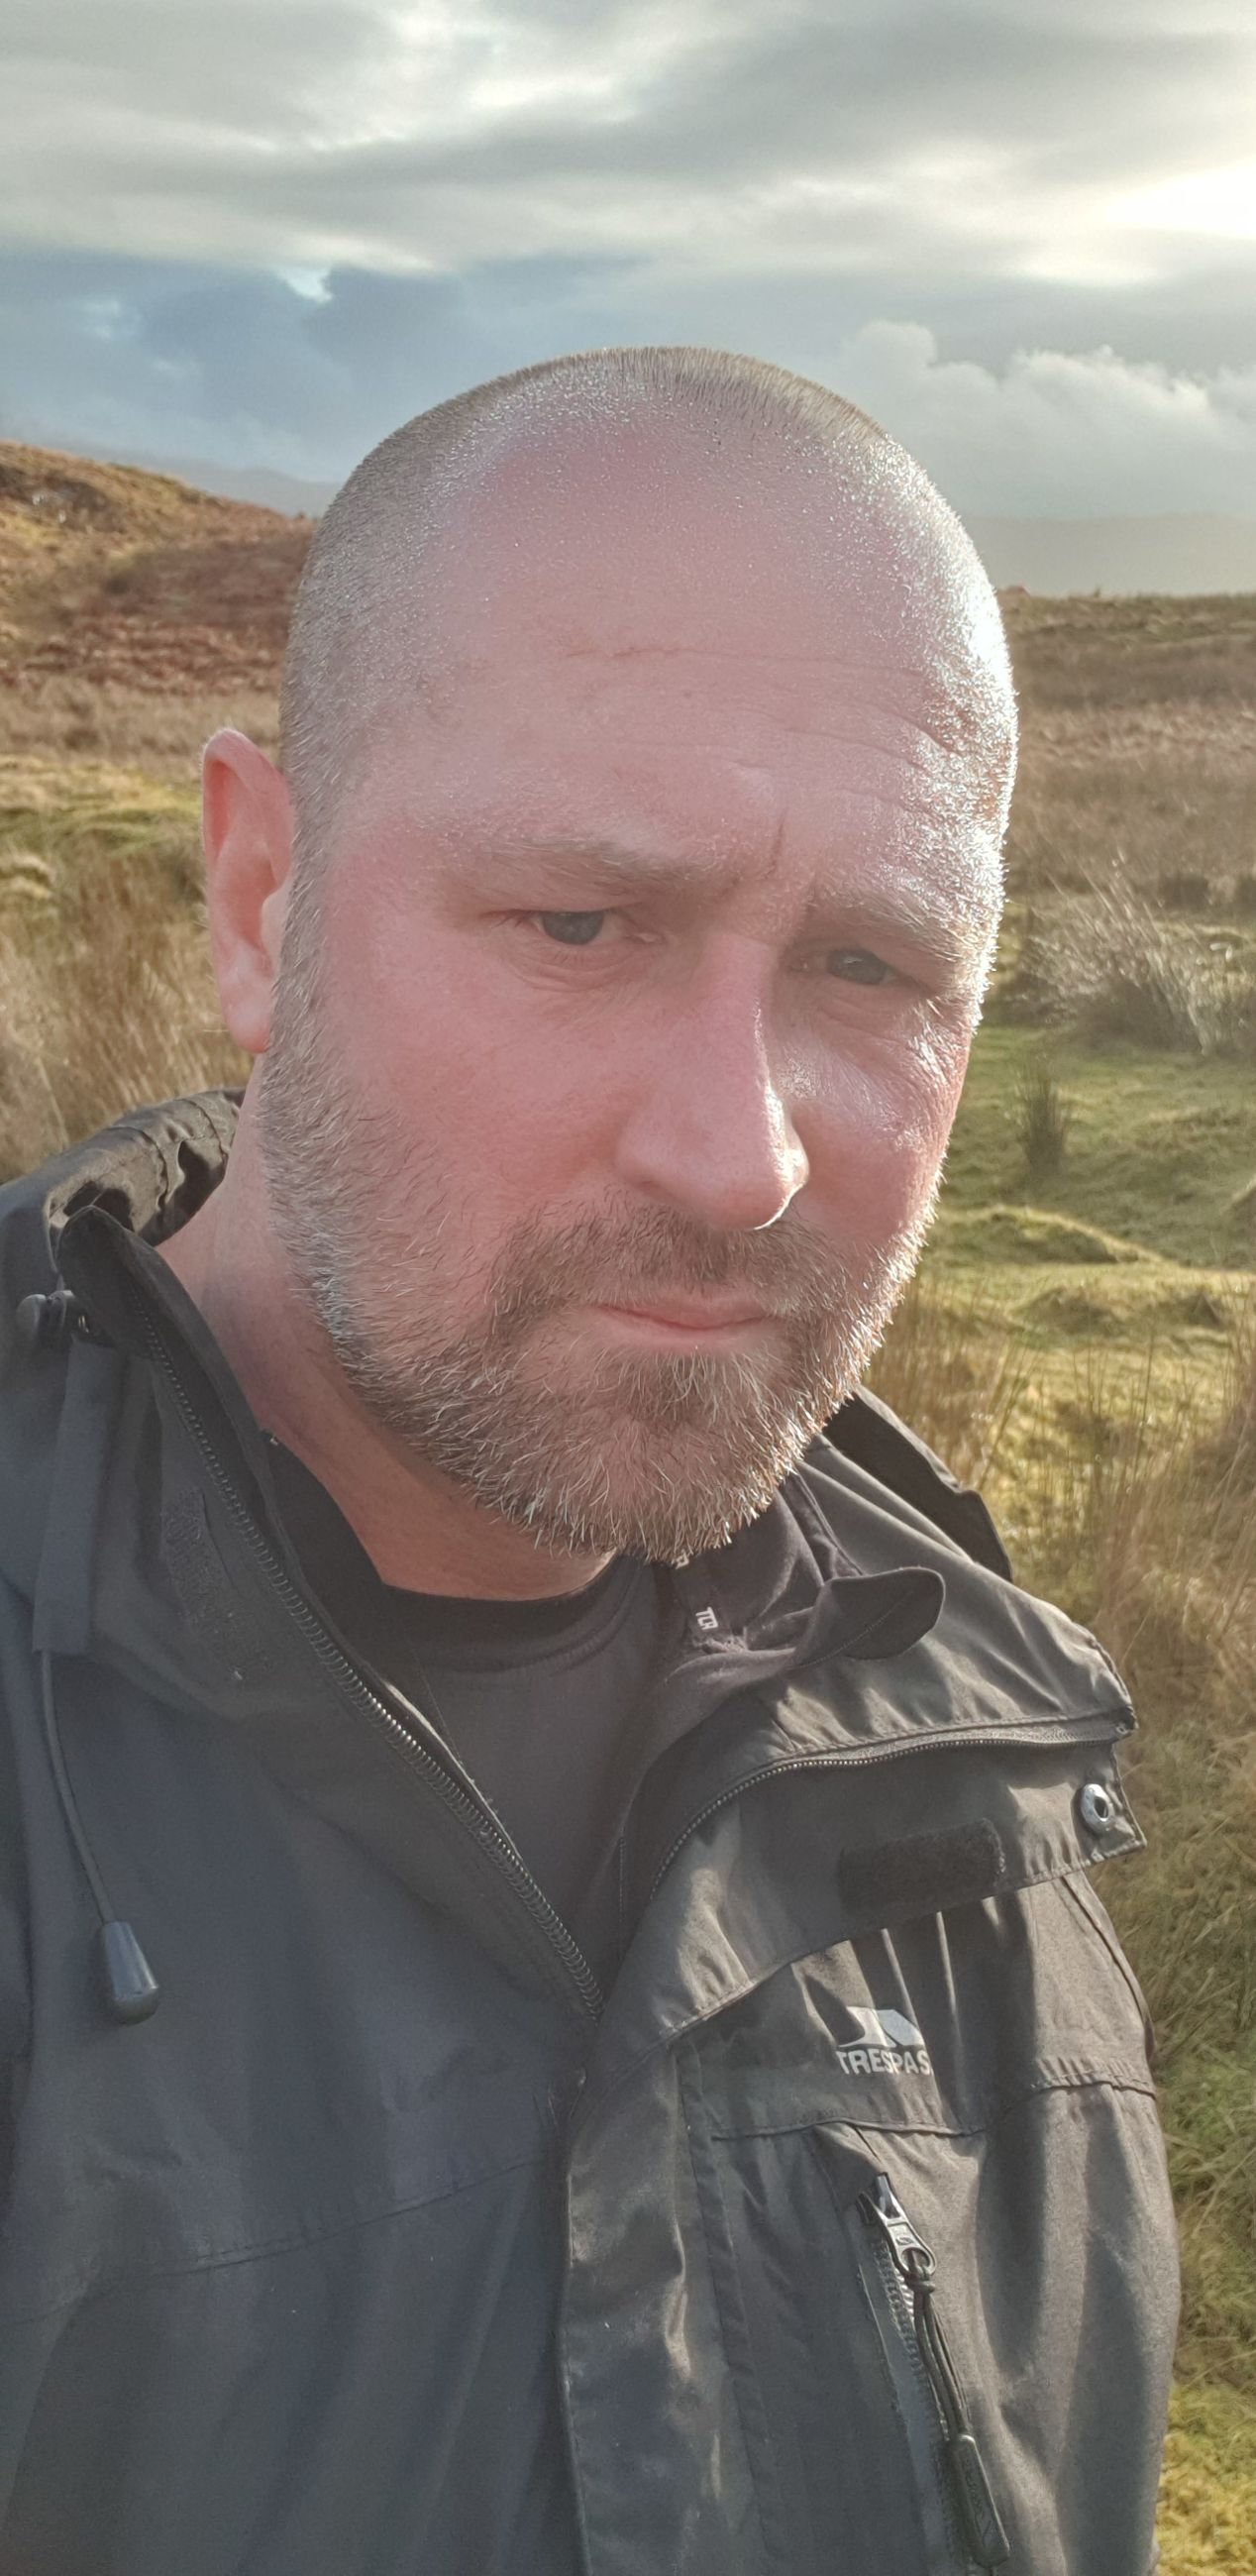 one person, men, portrait, males, beard, real people, front view, adult, mature men, leisure activity, facial hair, lifestyles, nature, mature adult, mid adult men, looking at camera, mid adult, headshot, outdoors